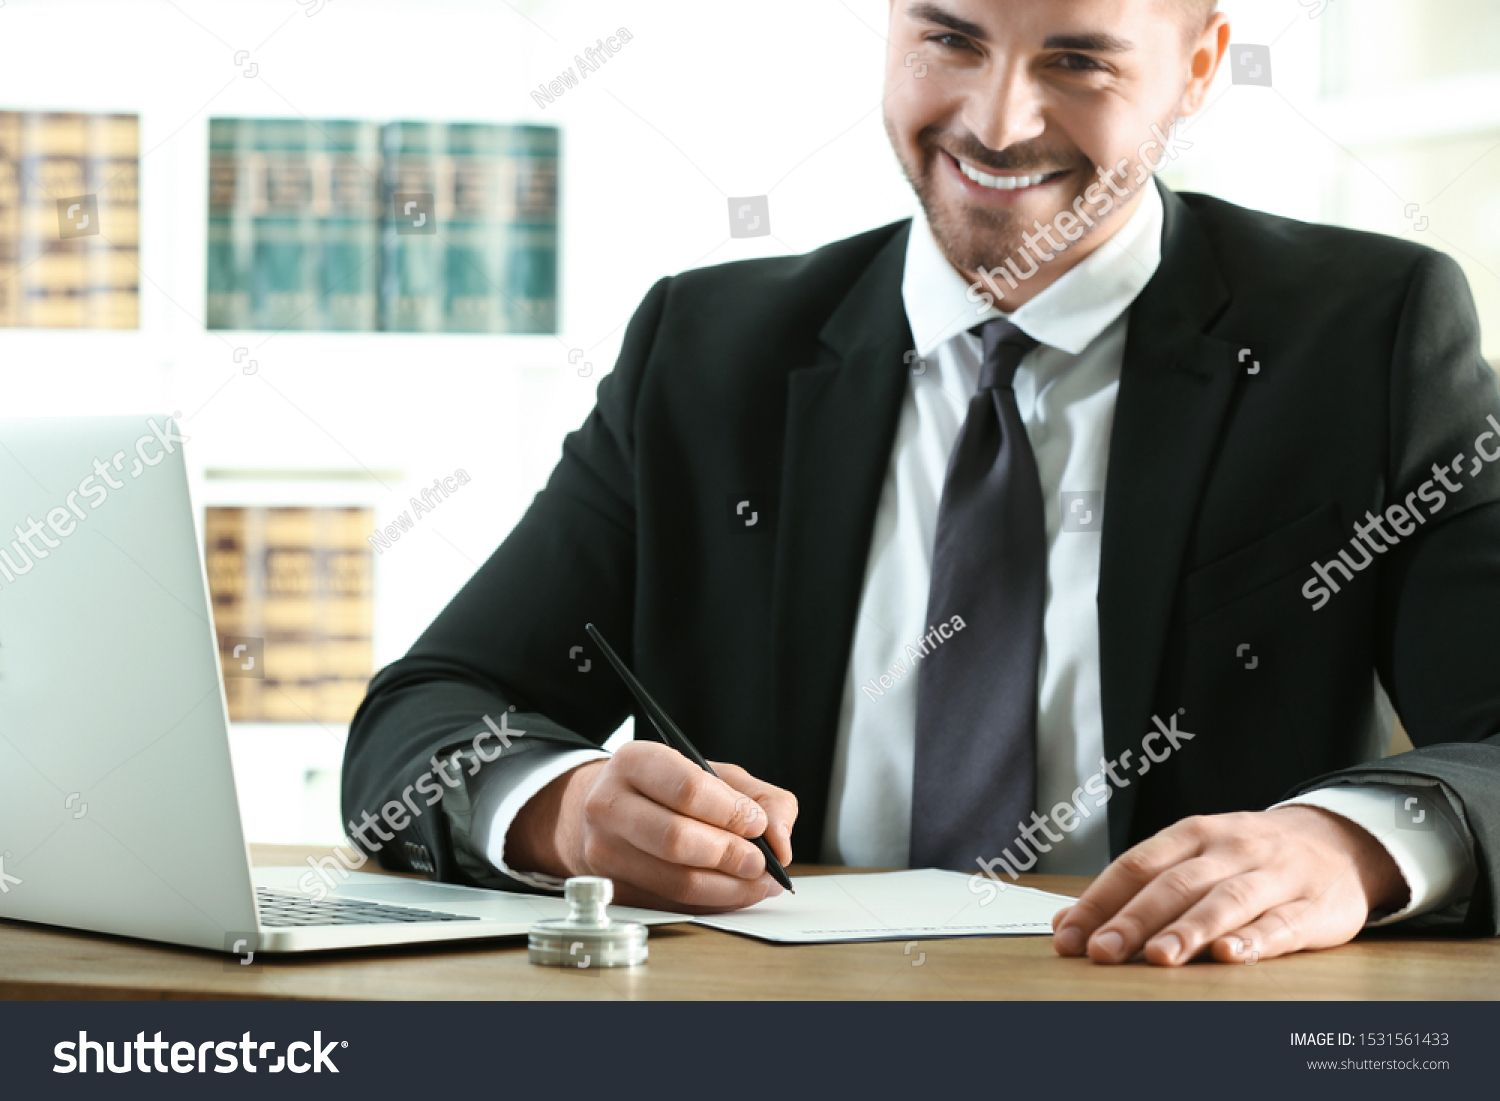 Male notary working with documents at table royalty free